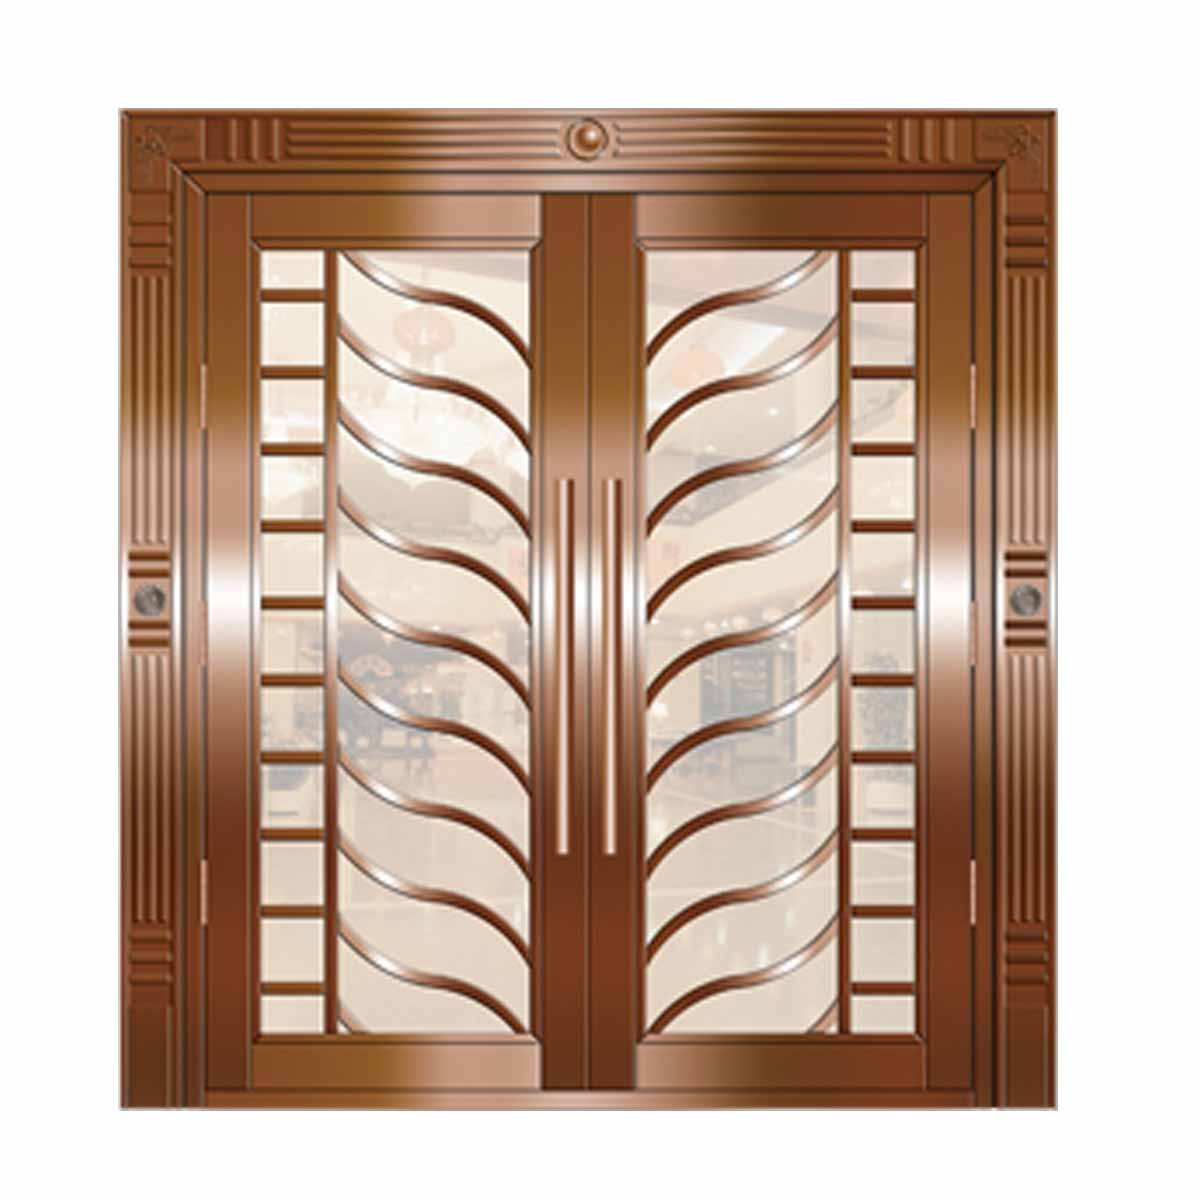 1200 #4B2713 Double Door Security Steel Door Exterior Doorzy Sd008 Steel Double  wallpaper Steel Double Doors Exterior 42151200